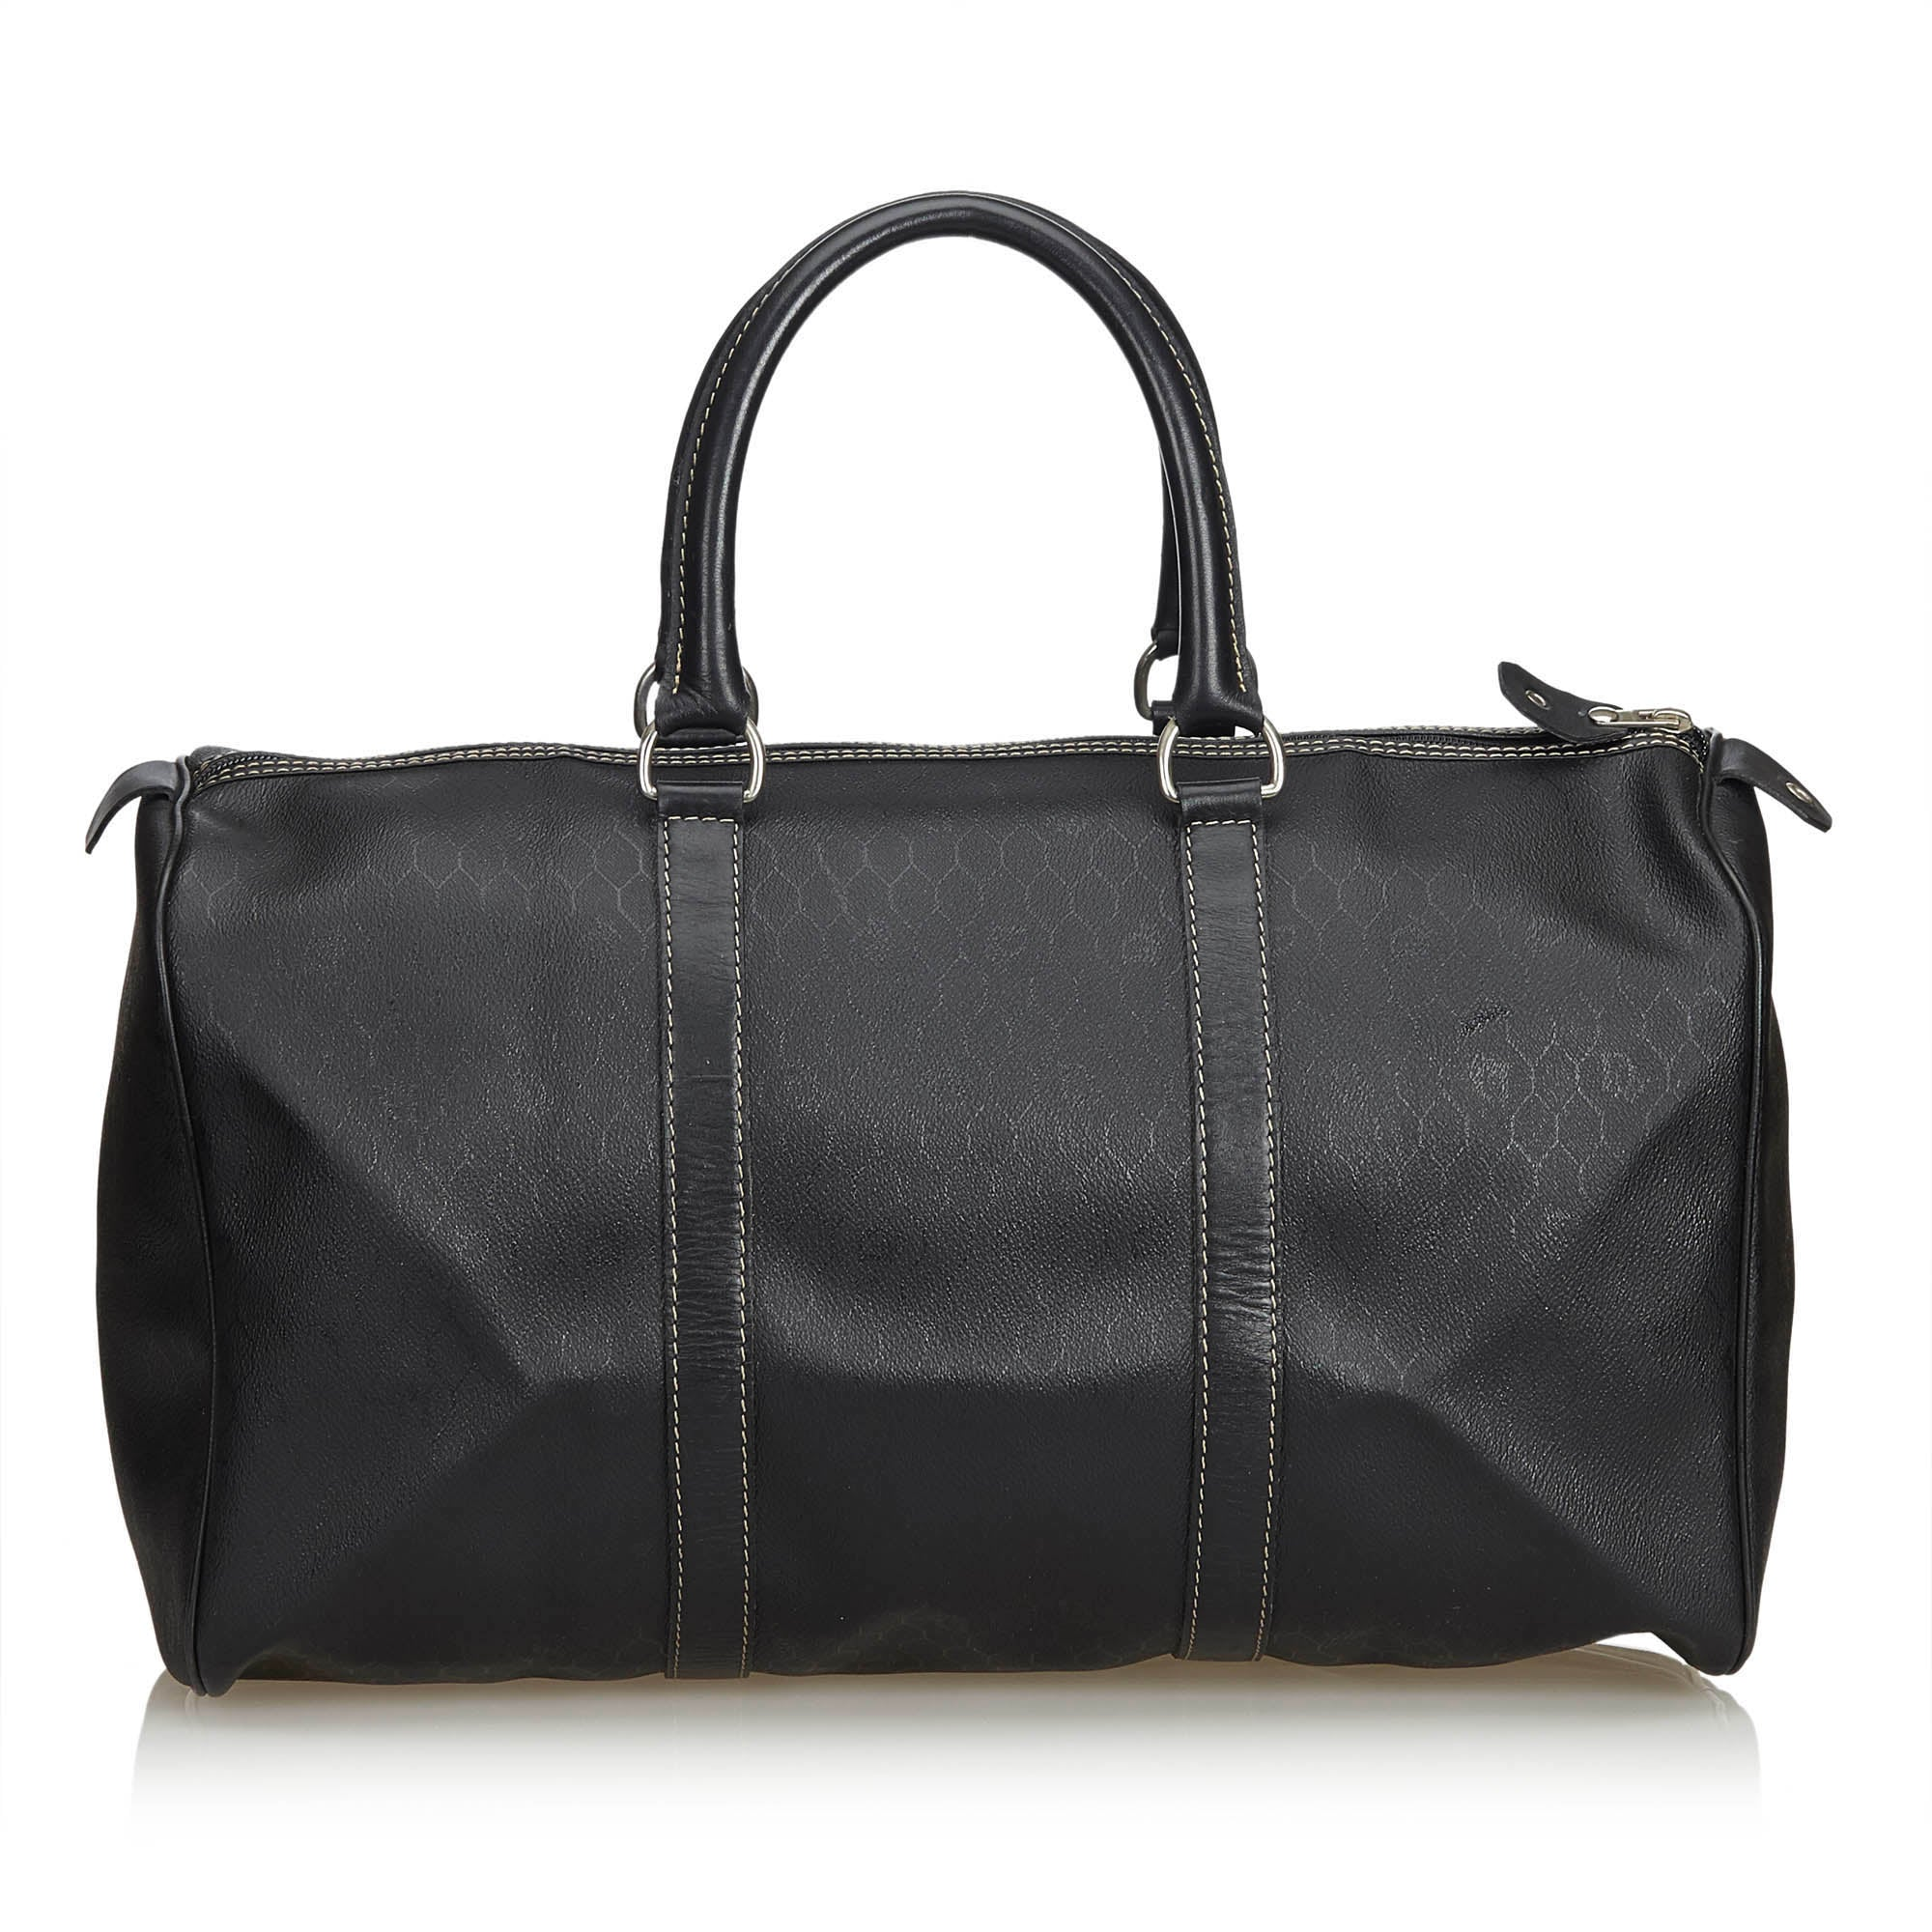 Dior duffle bag - Iconics Preloved Luxury